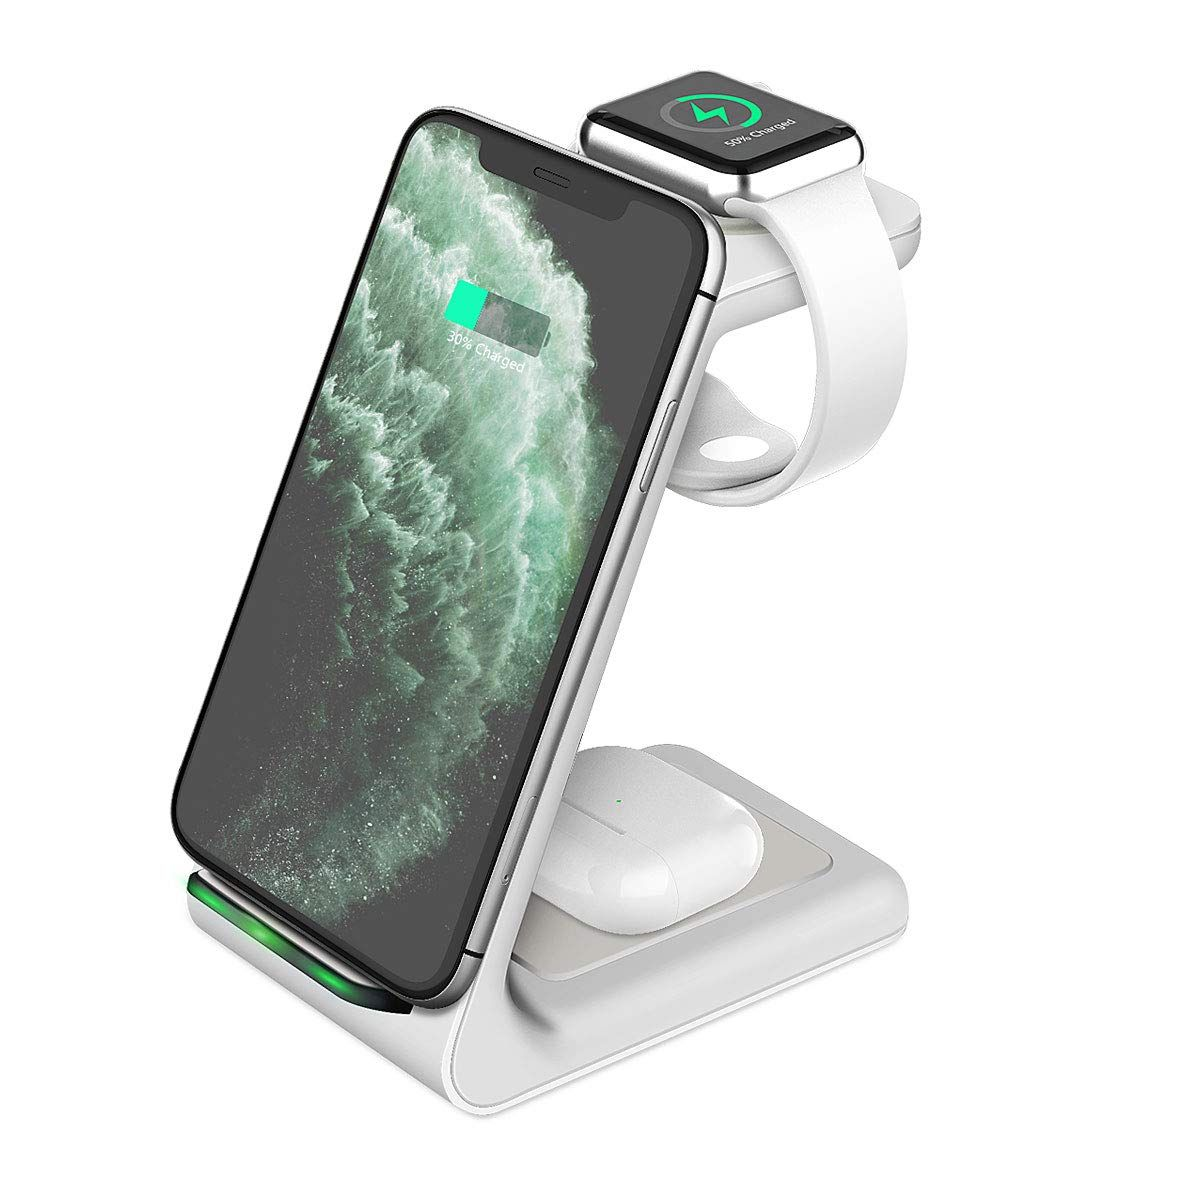 Wireless Charging Station Kkuyi 3 In 1 Wireless Charger Stand For